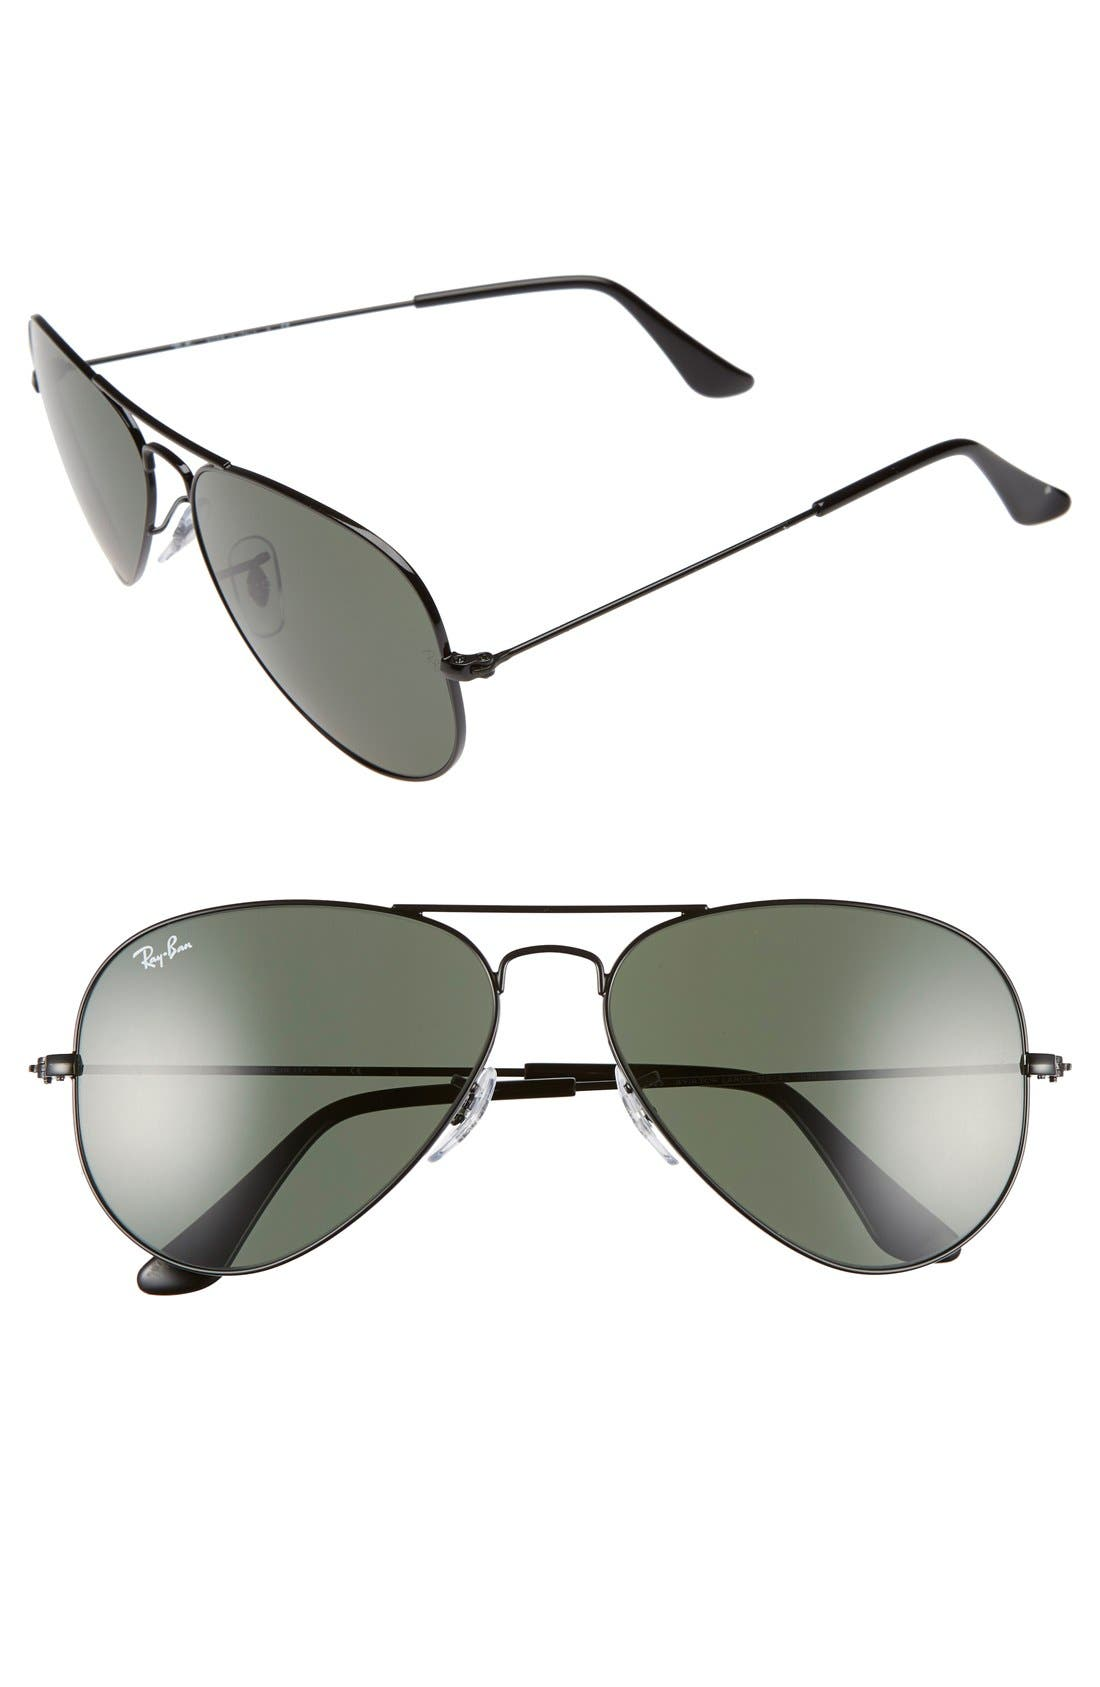 Ray-Ban Standard Original 58mm Aviator Sunglasses